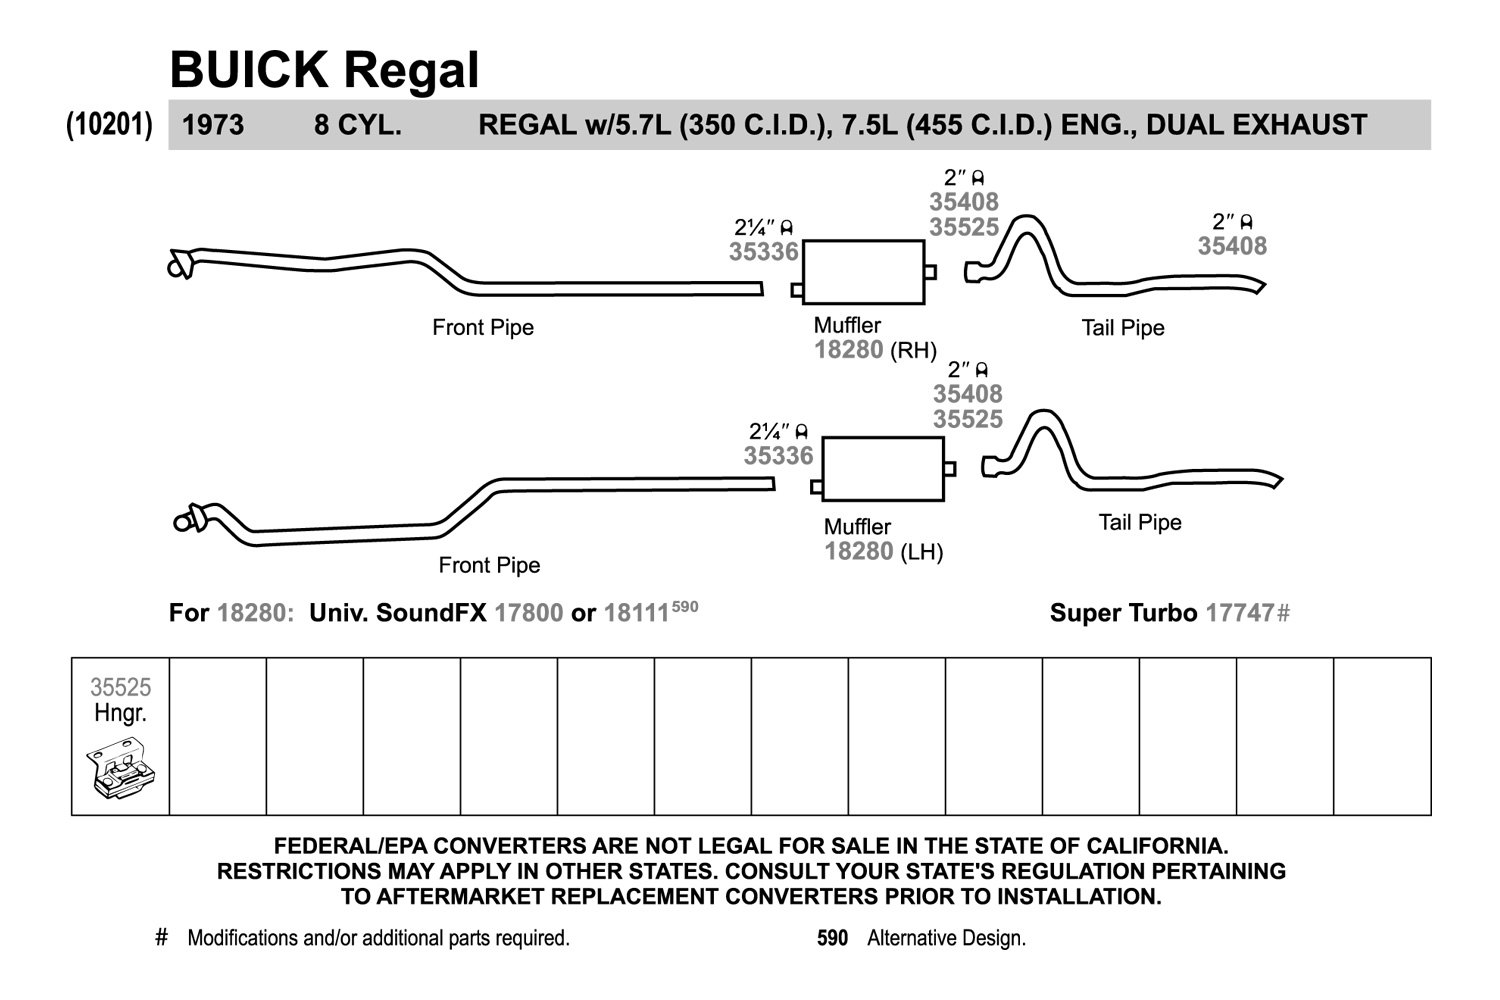 1996 buick regal parts diagram  u2022 wiring diagram for free 1996 Buick Regal Brake System 13 00215